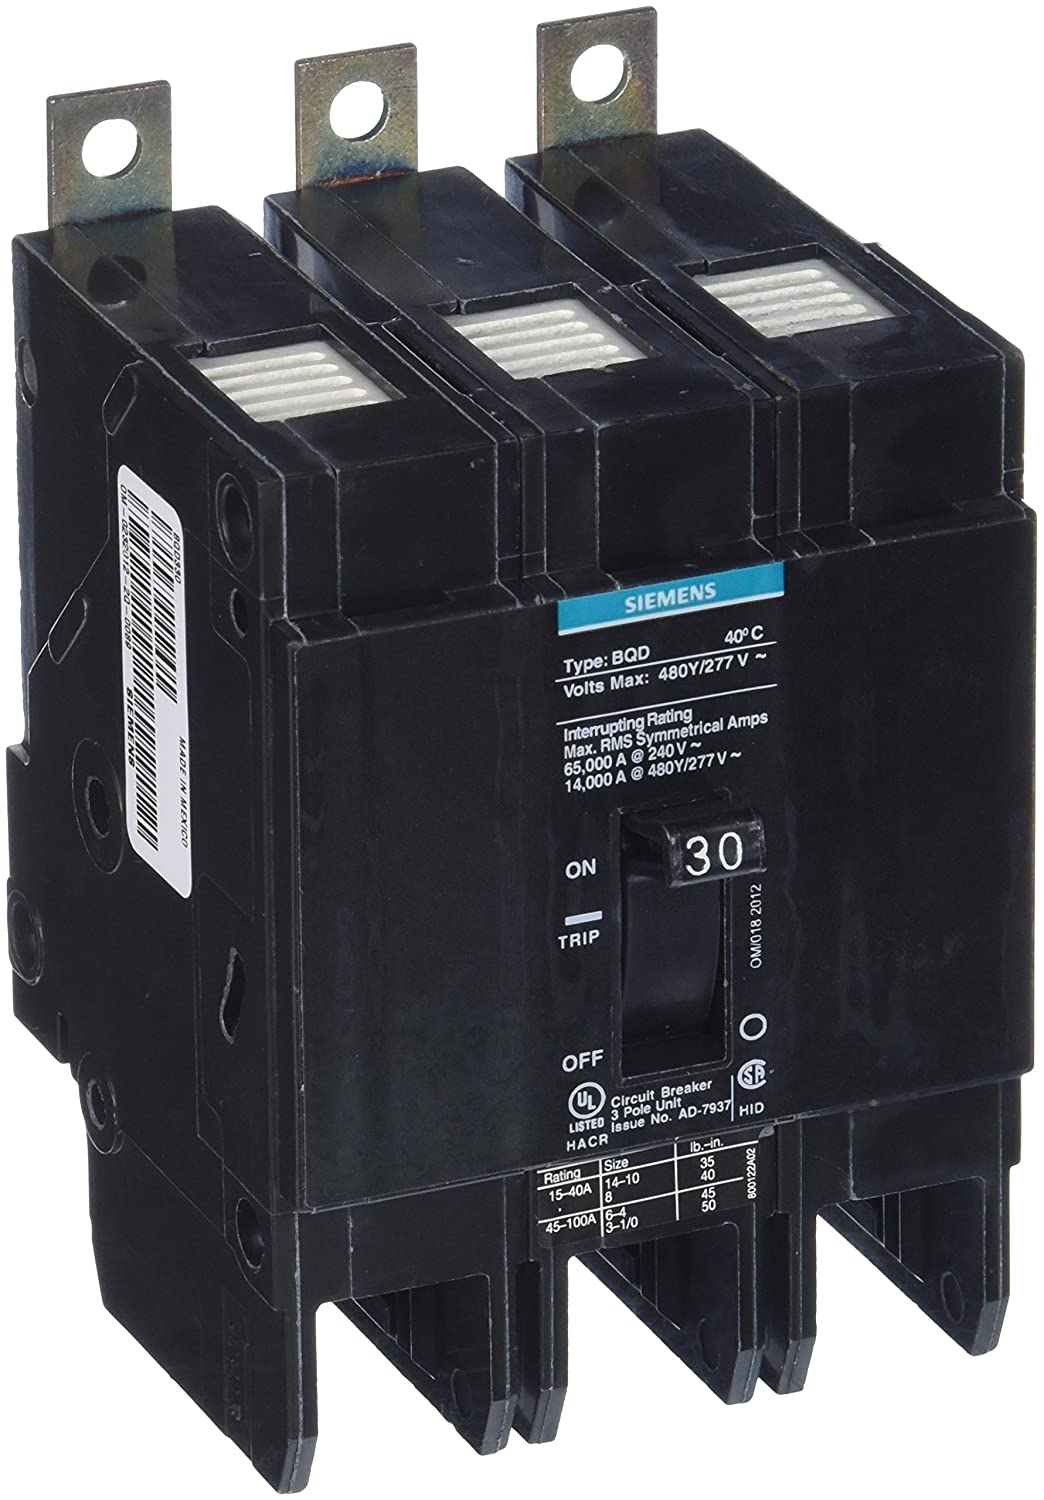 Siemens Bqd330 30 Amp Three Pole 480y 277v Ac 14kaic Bolt In Breaker Electrical Distribution Panels Circuit Fires Ground Fault Interrupters